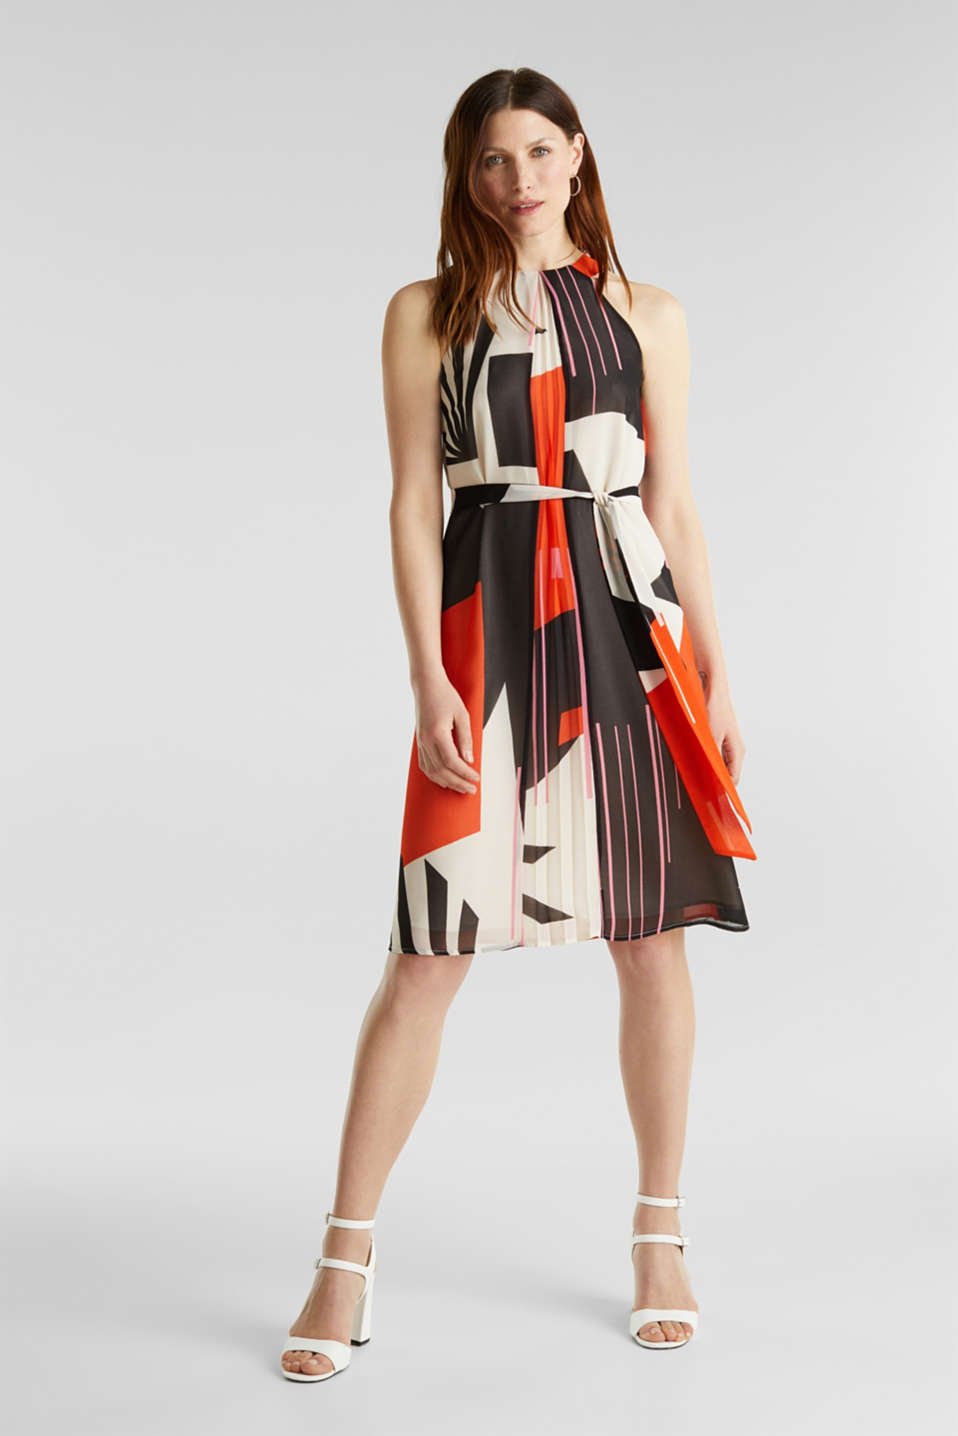 Esprit - Recycled: Dress with a graphic print